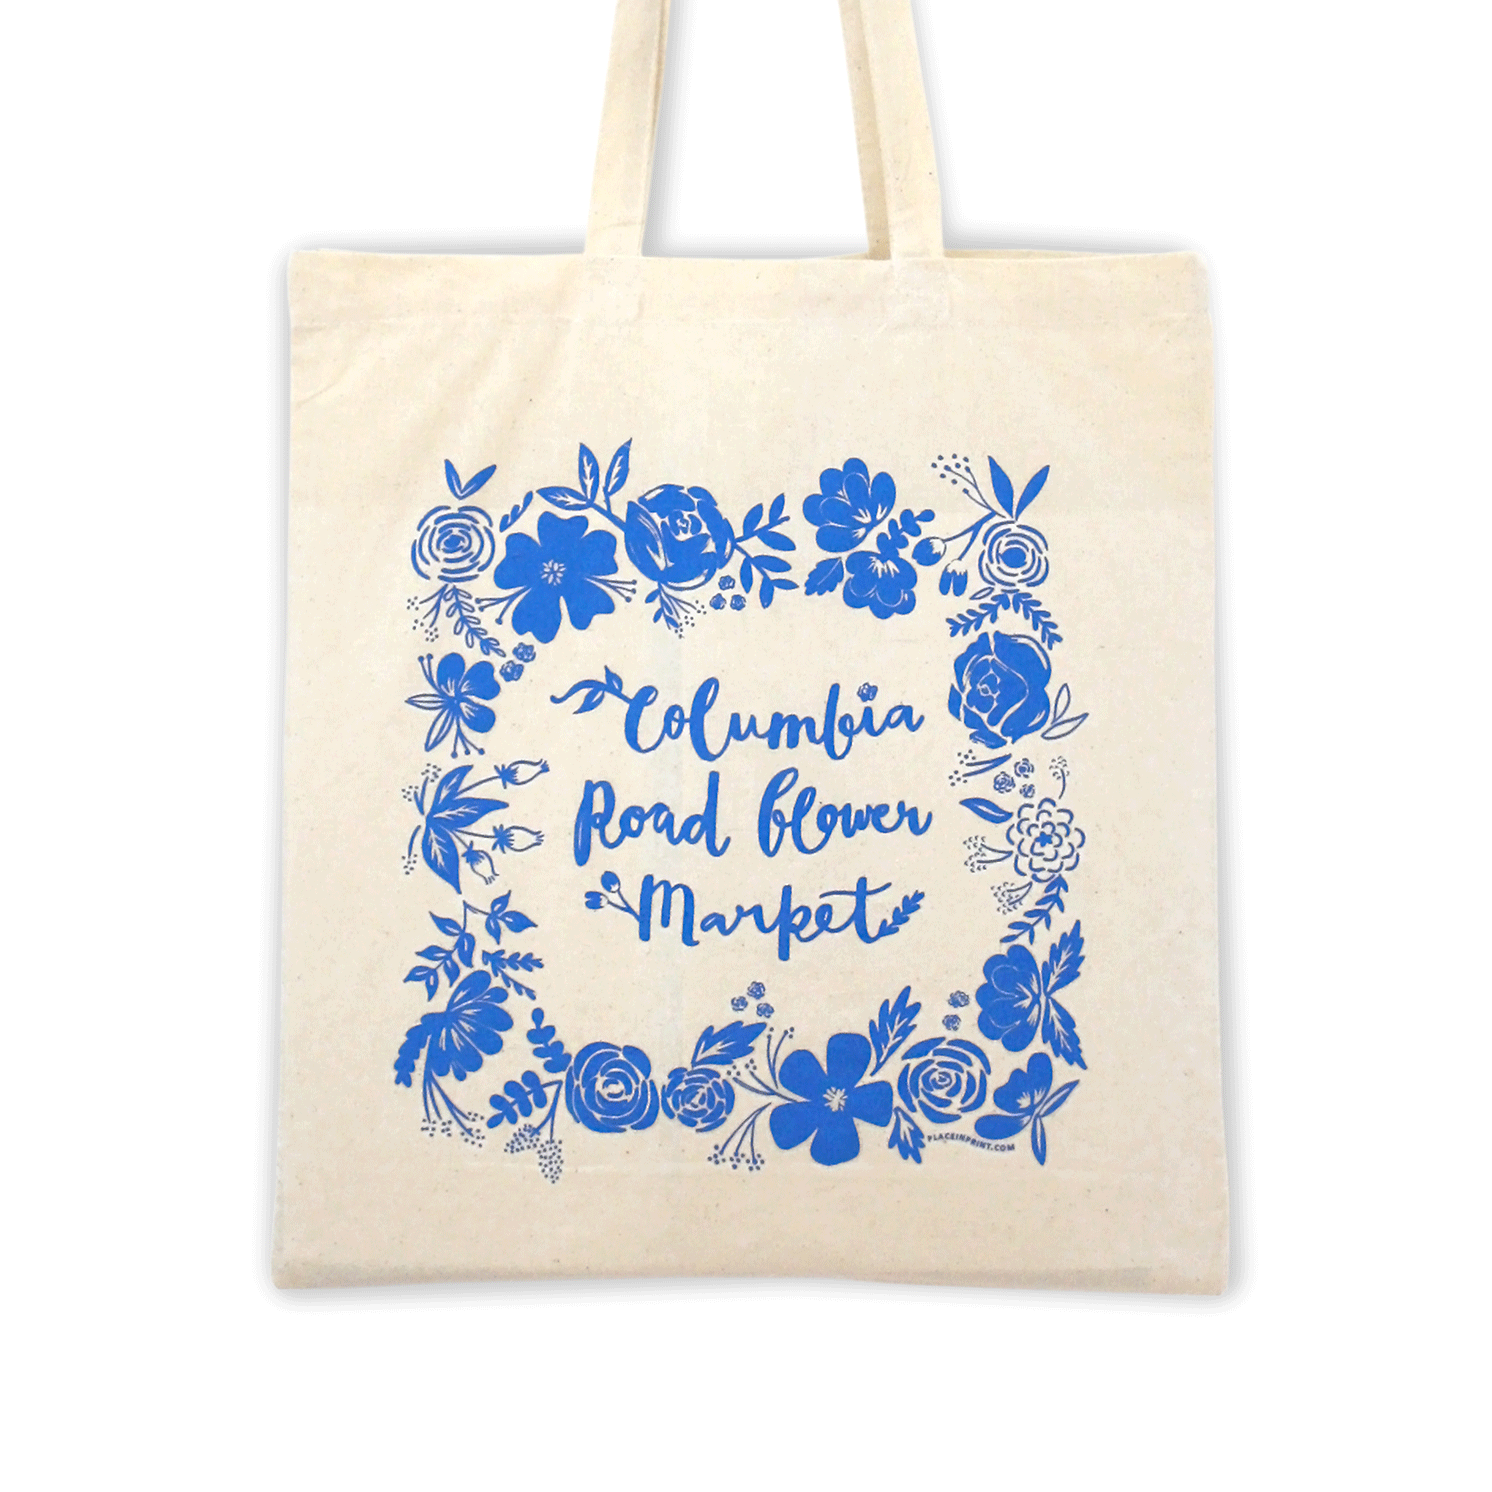 Place in Print Columbia Road Flower Market Tote Bag